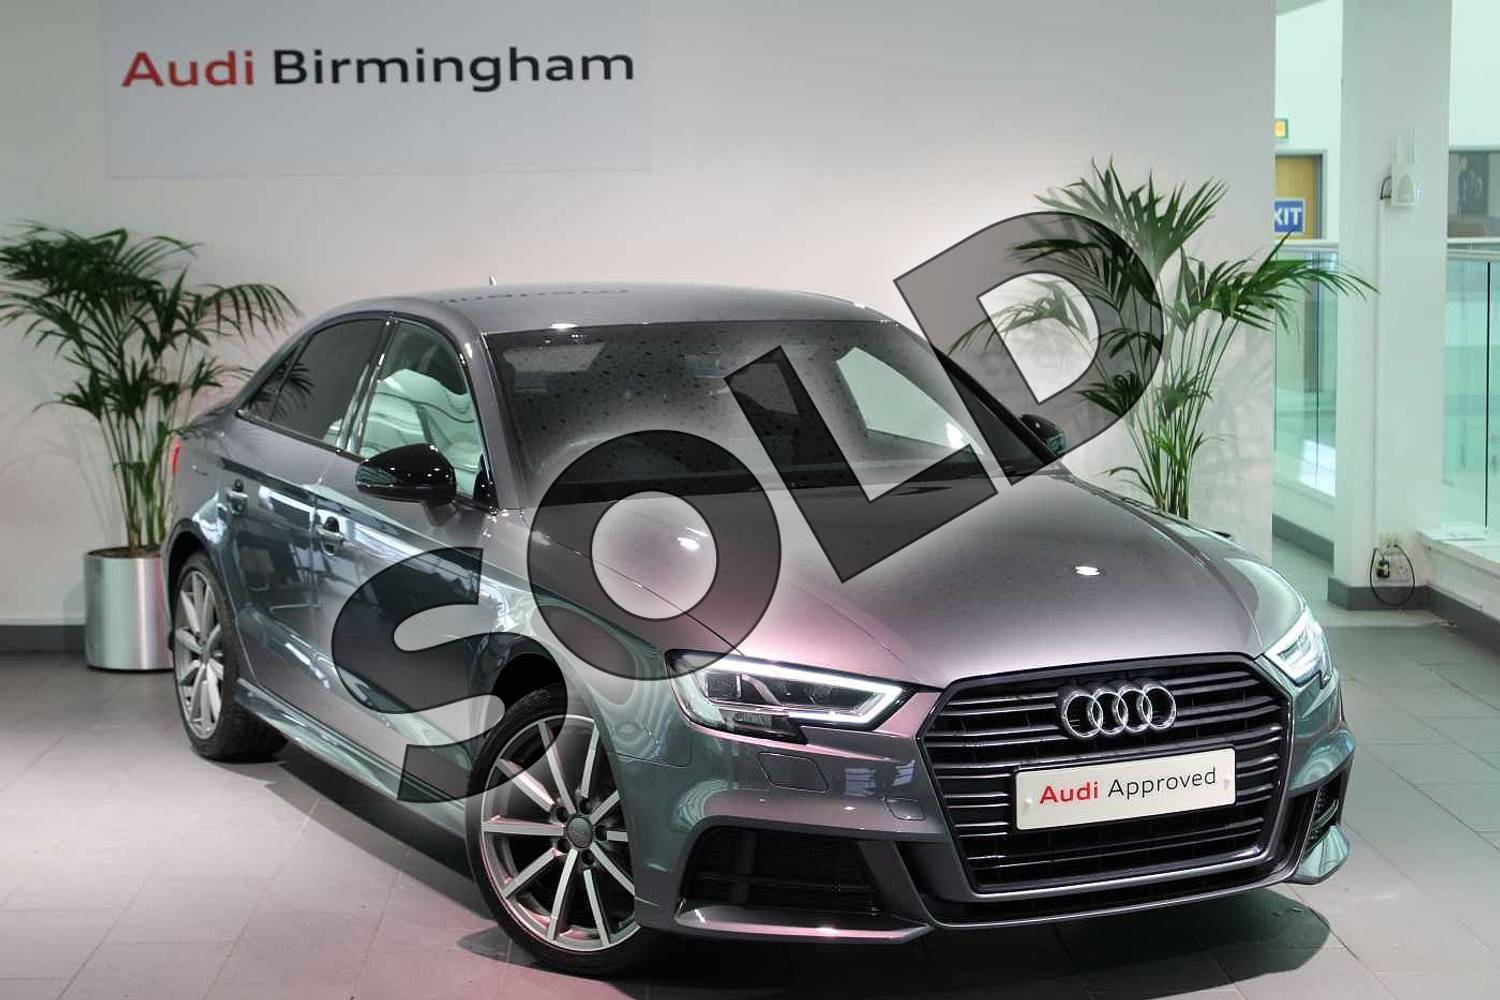 2018 Audi A3 Saloon Special Editions 1.0 TFSI Black Edition 4dr in Monsoon Grey Metallic at Birmingham Audi